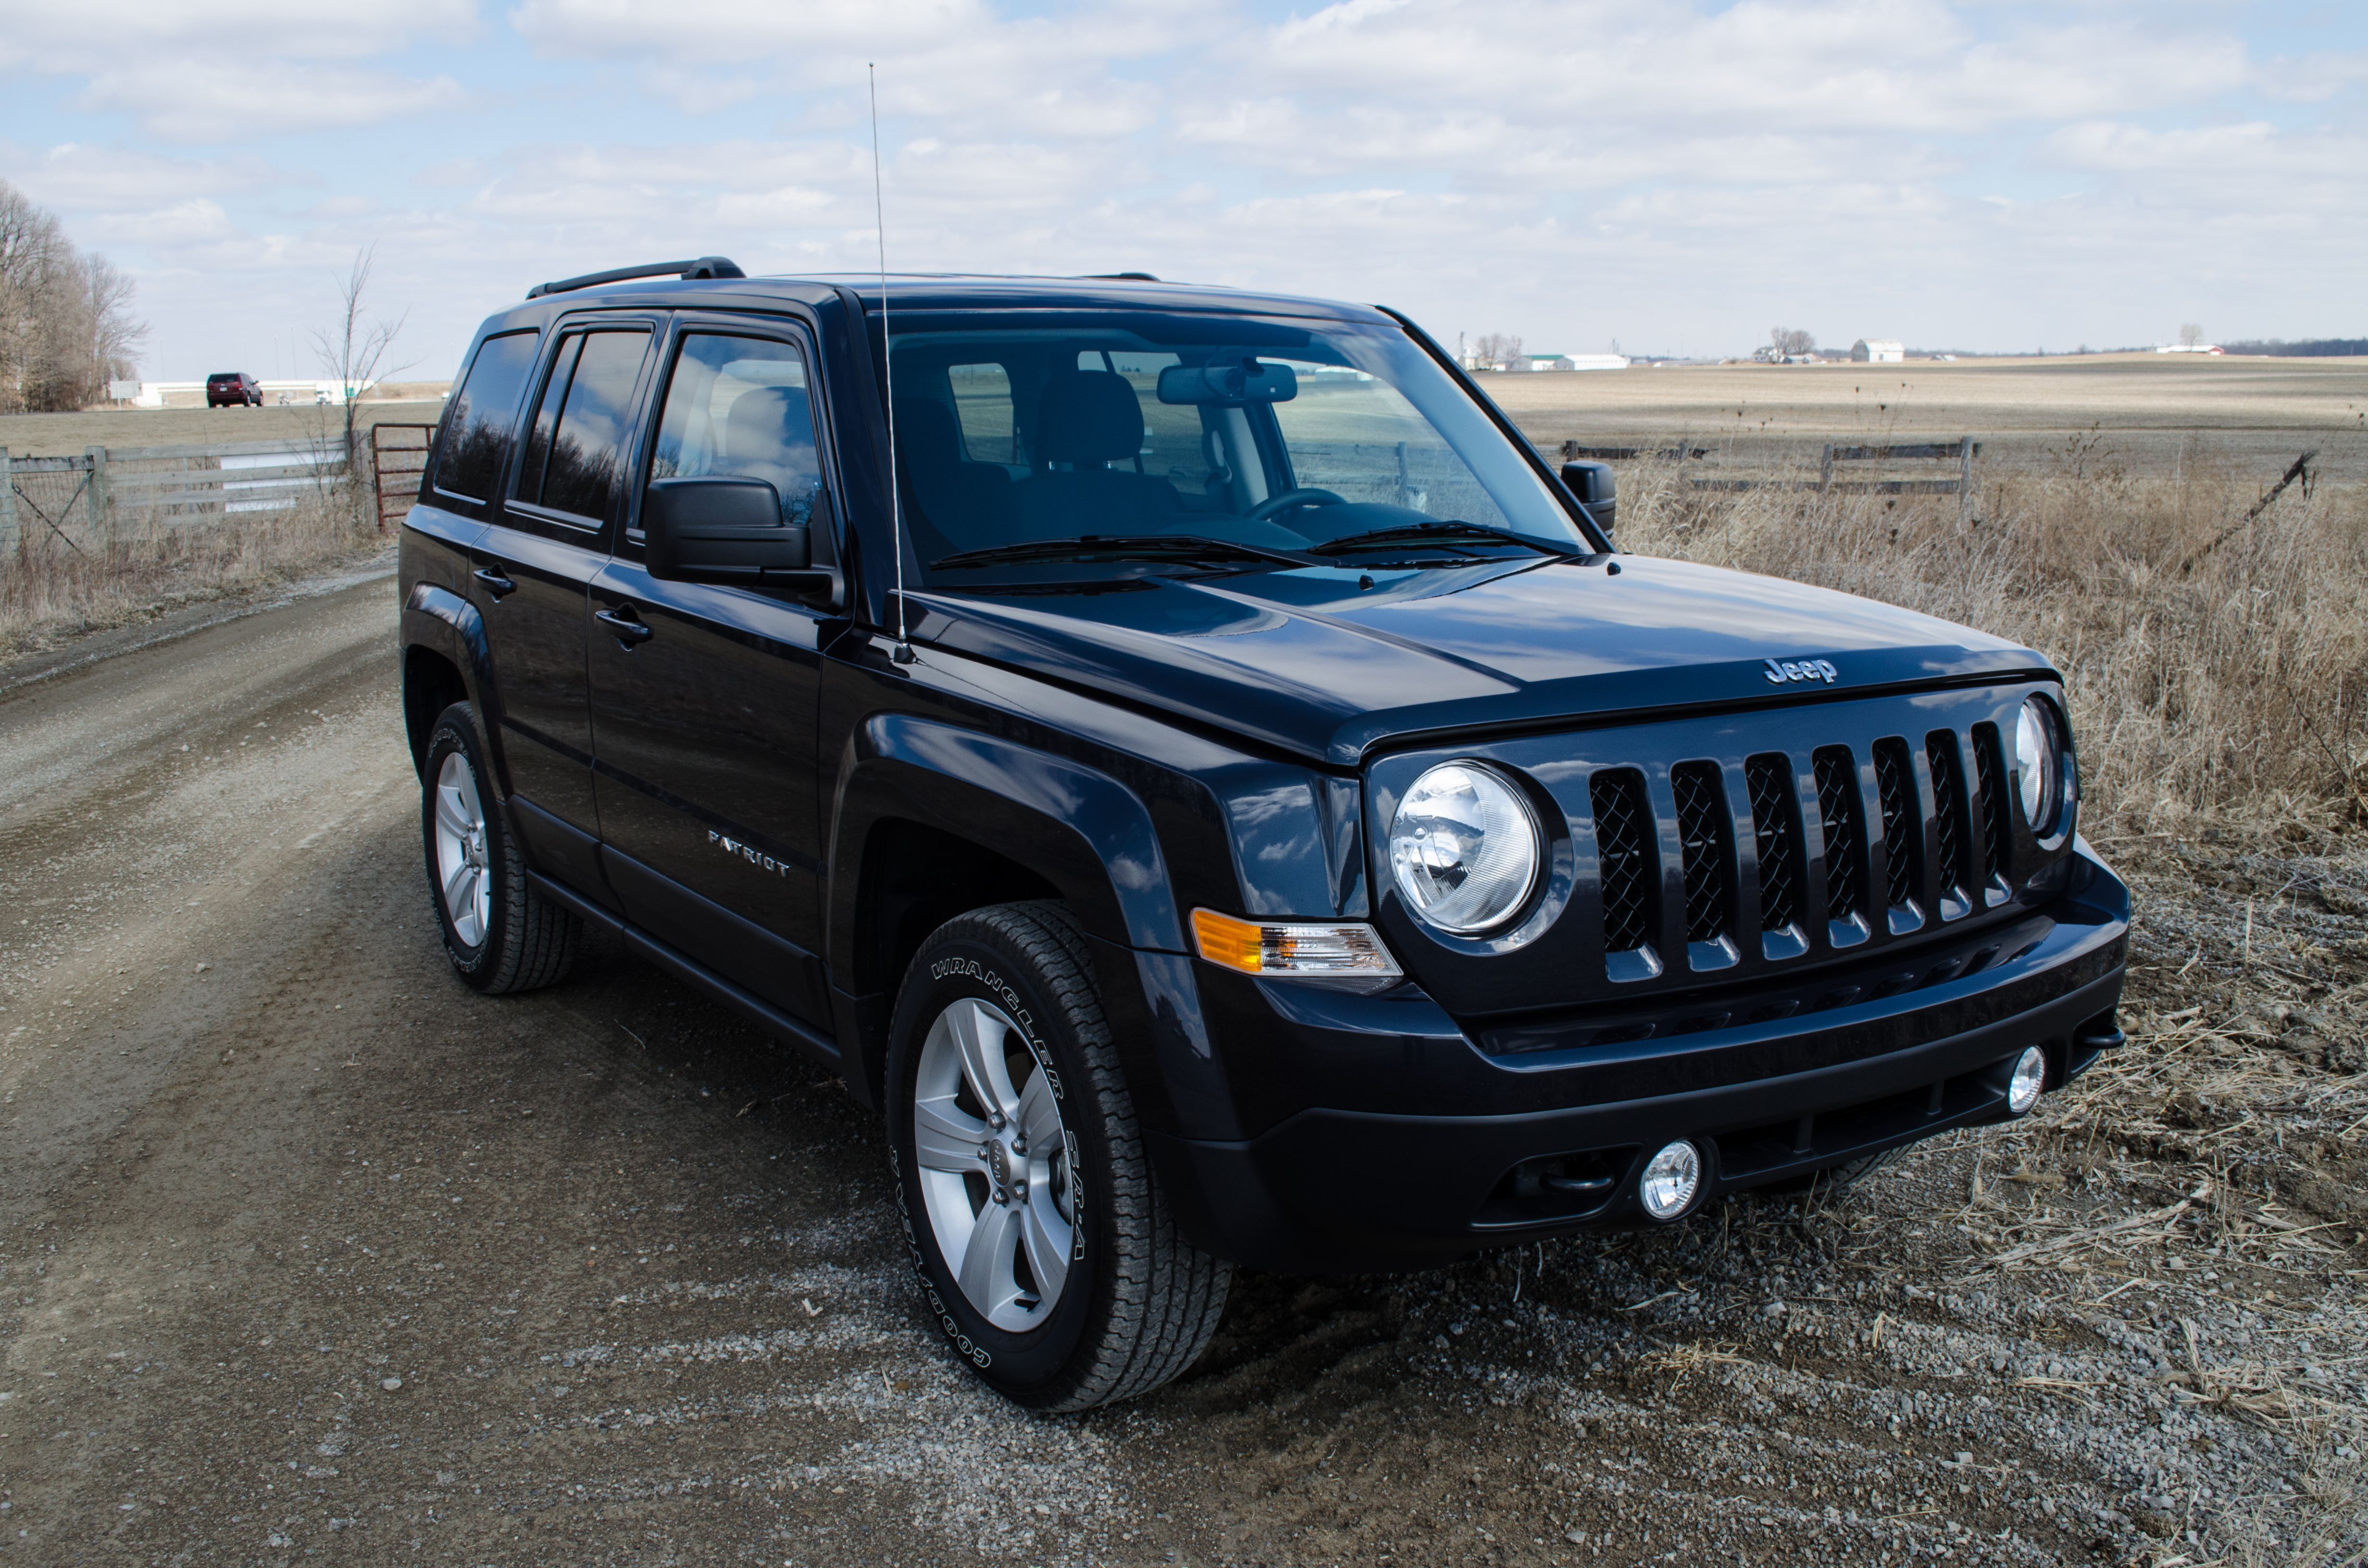 Good Motor Review Fast Facts: Manufacturer: Jeep. Model: Patriot